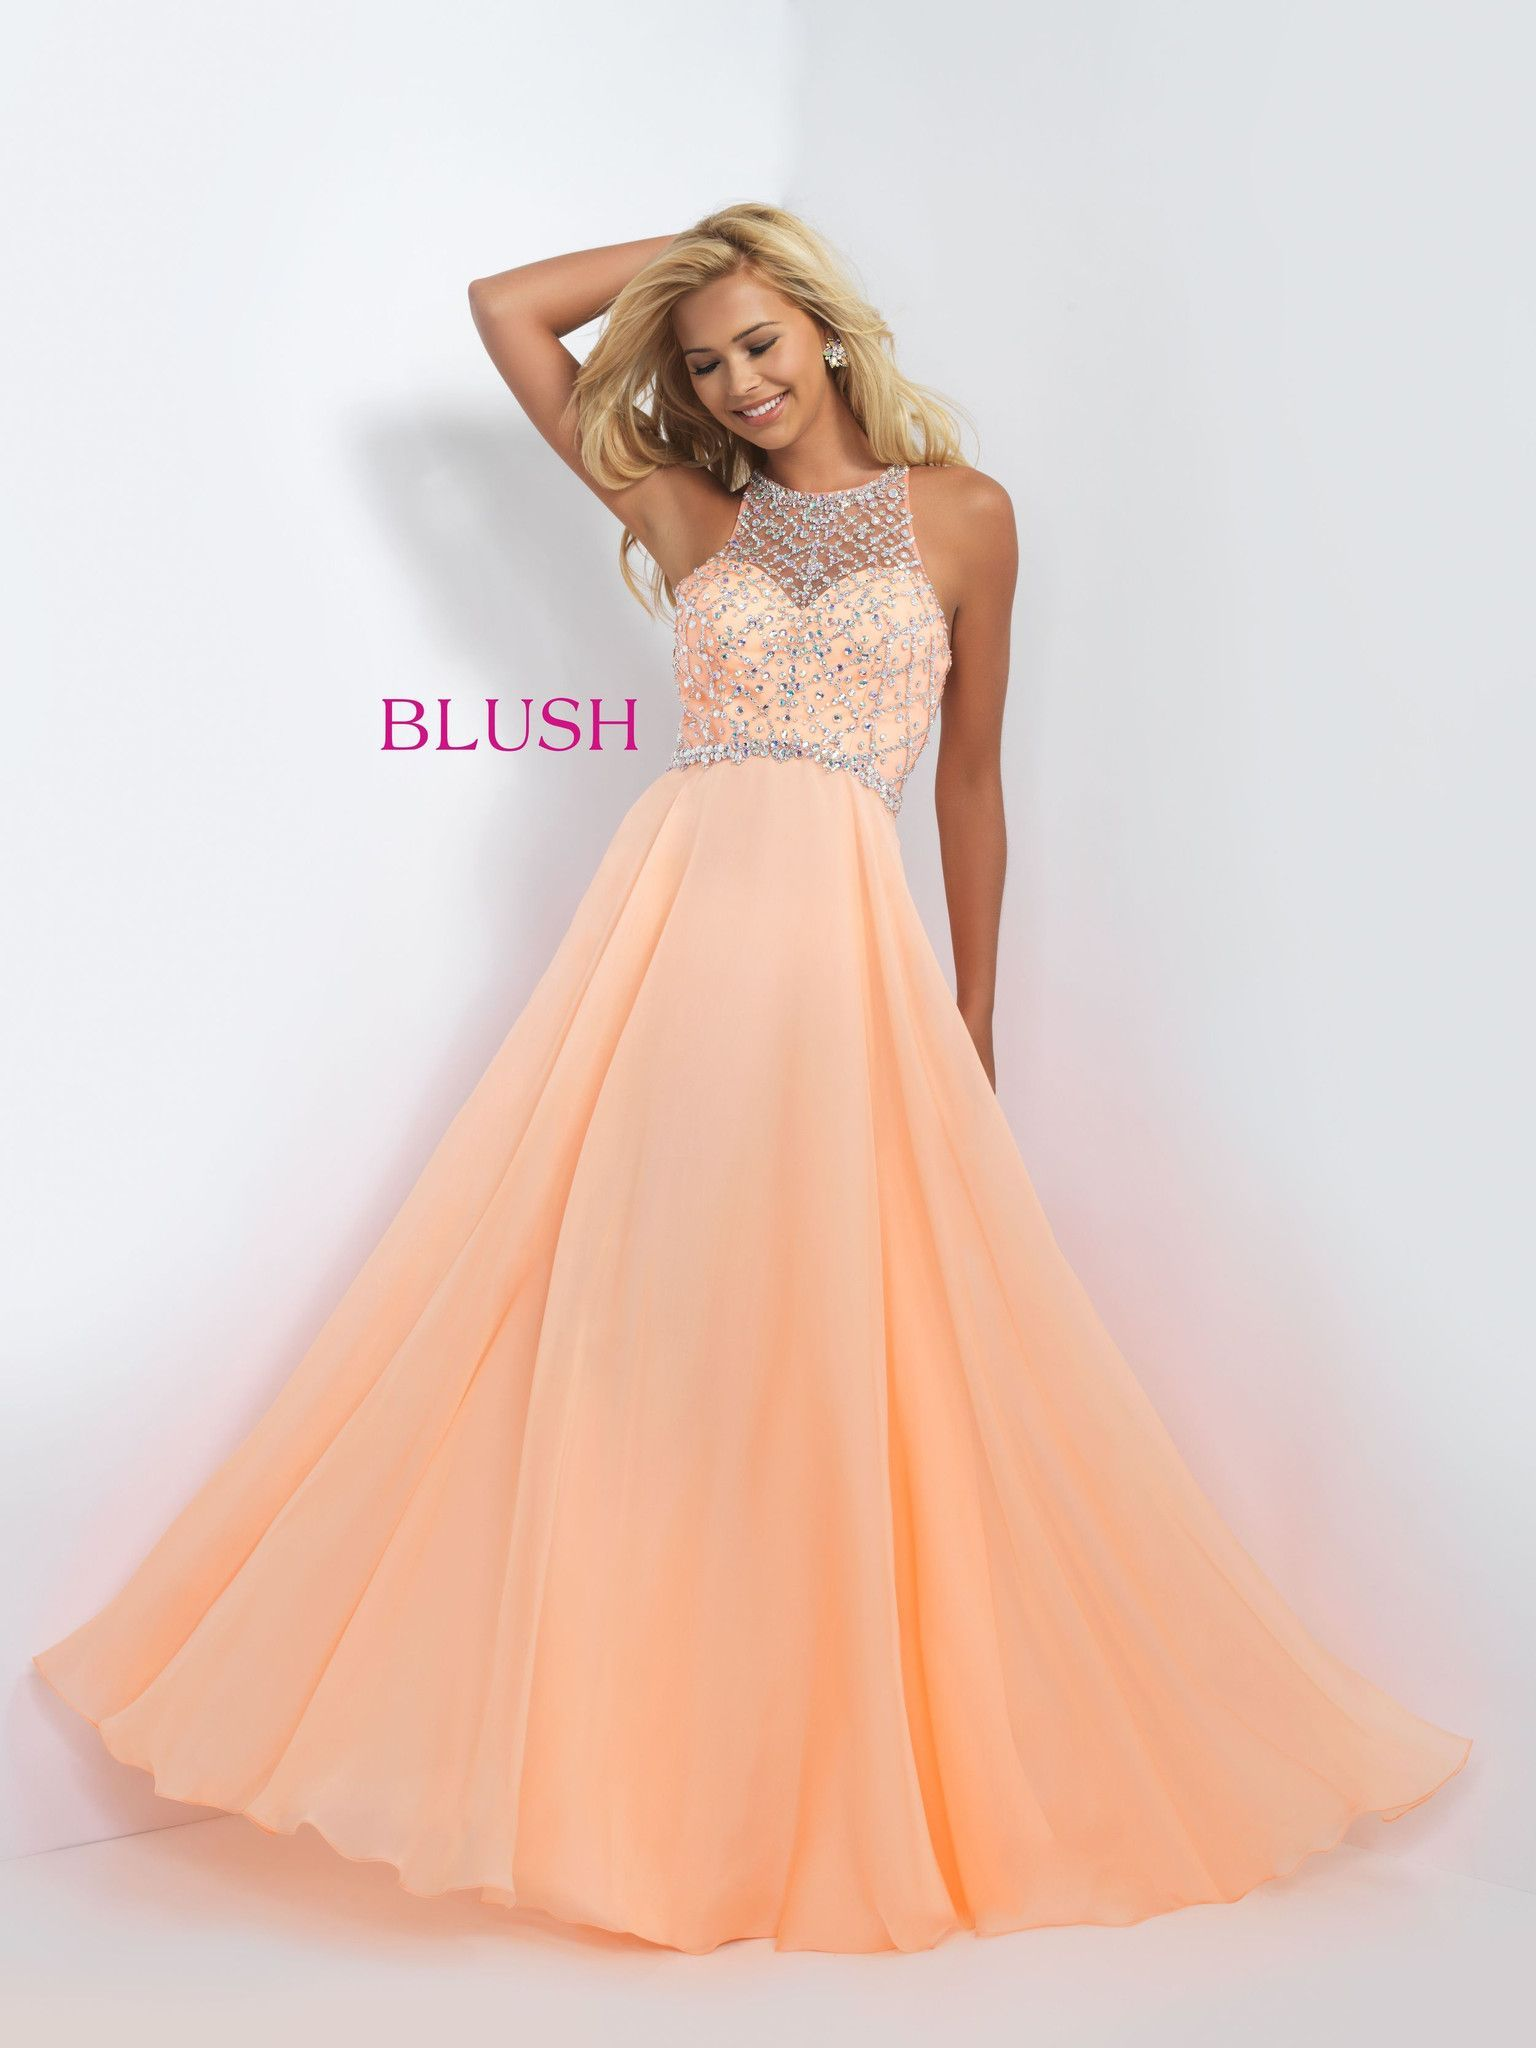 Blush prom dreamsicle dresses to impress pinterest blush